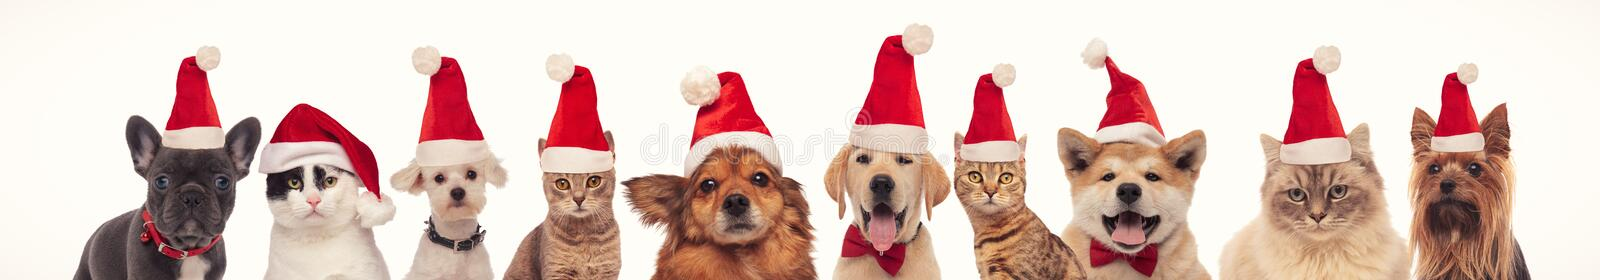 Many cats and dogs wearing santa claus hats for christmas royalty free stock photography